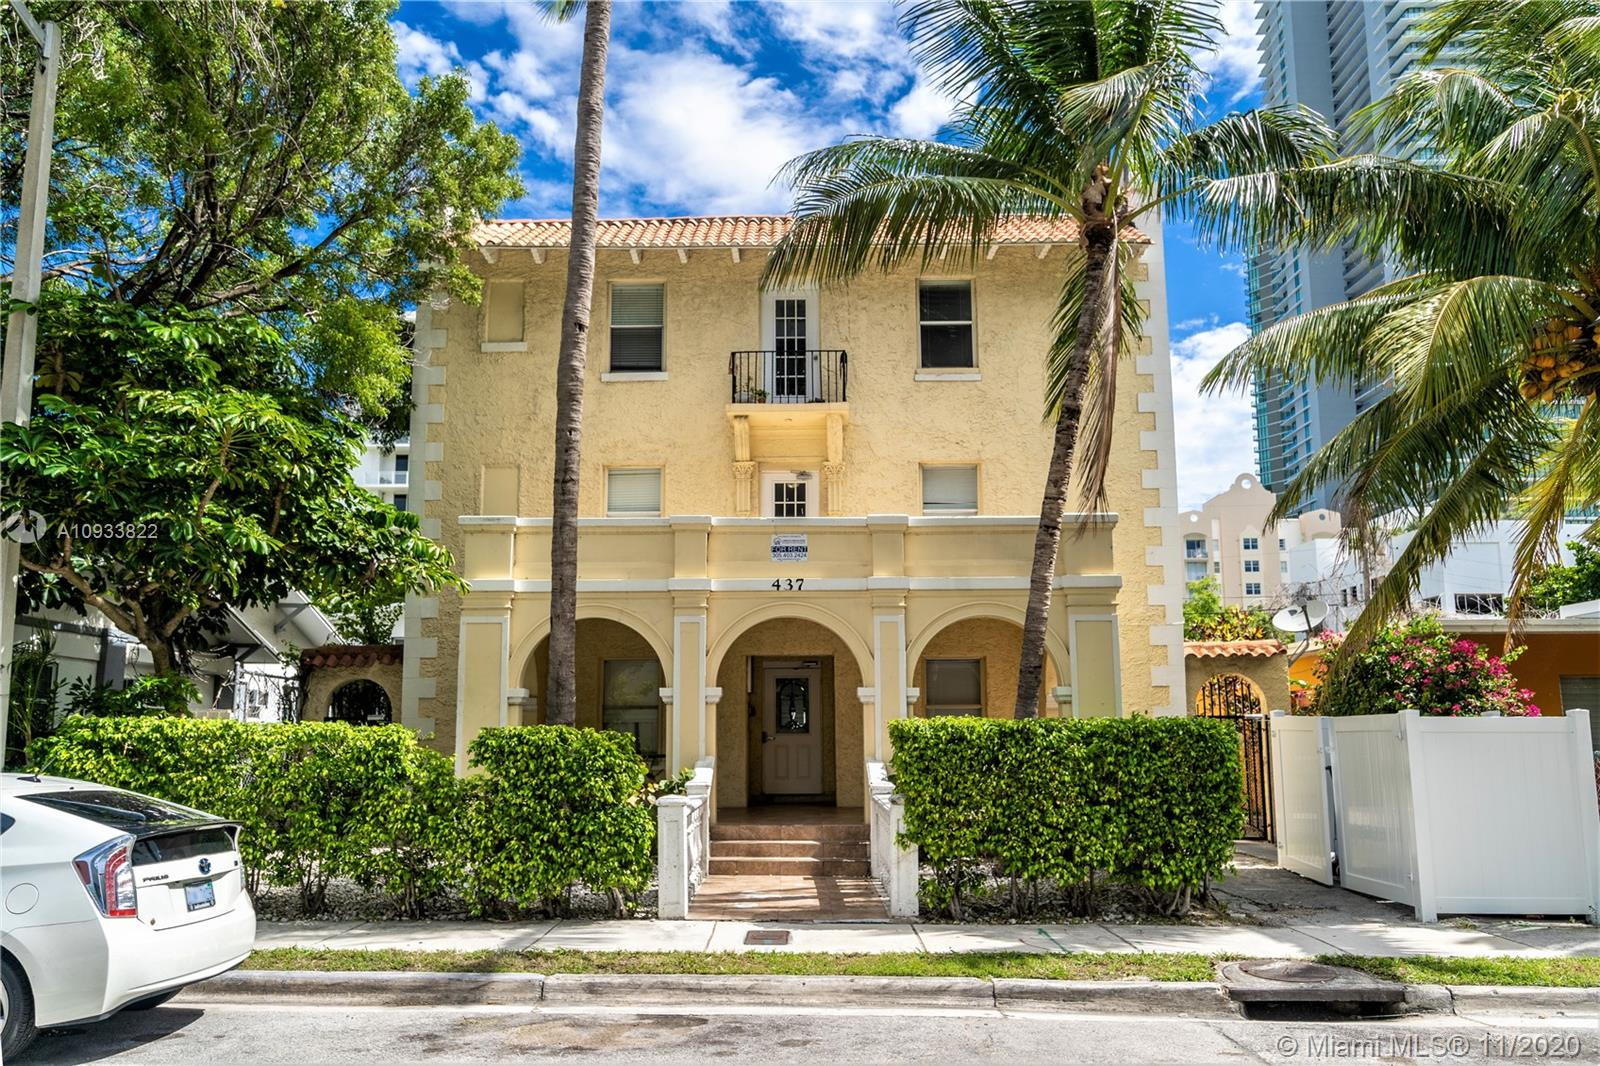 437 NE 29 ST #301 For Sale A10933822, FL